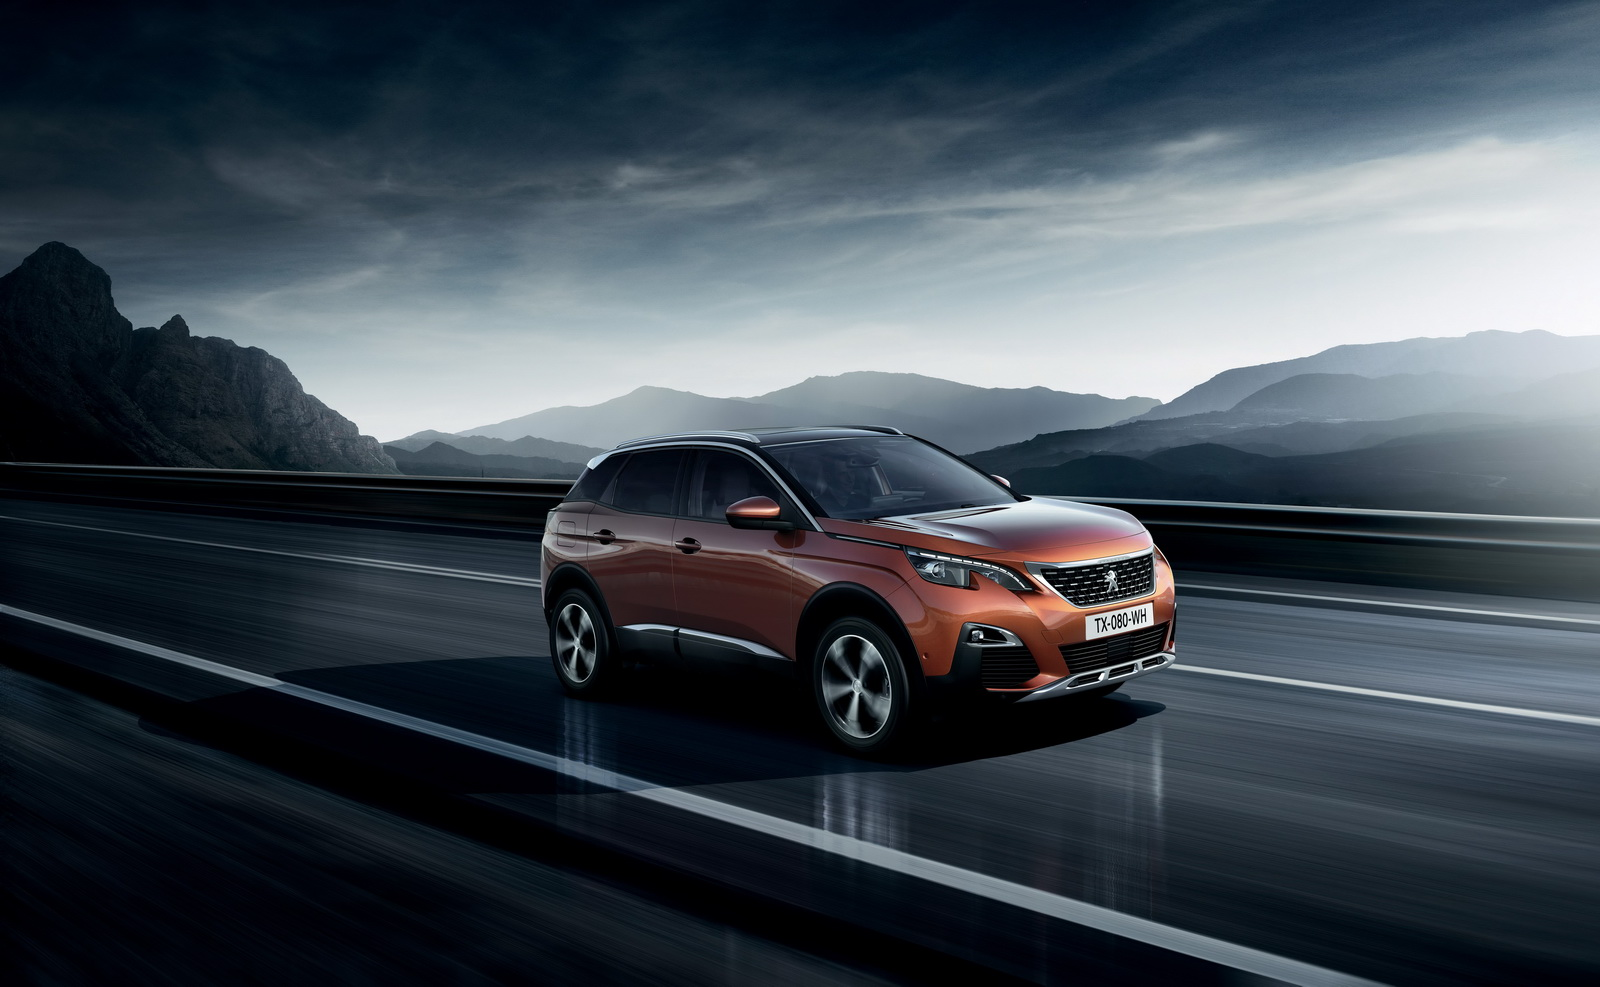 new peugeot 3008 to gain plug in hybrid option in 2019 carscoops. Black Bedroom Furniture Sets. Home Design Ideas